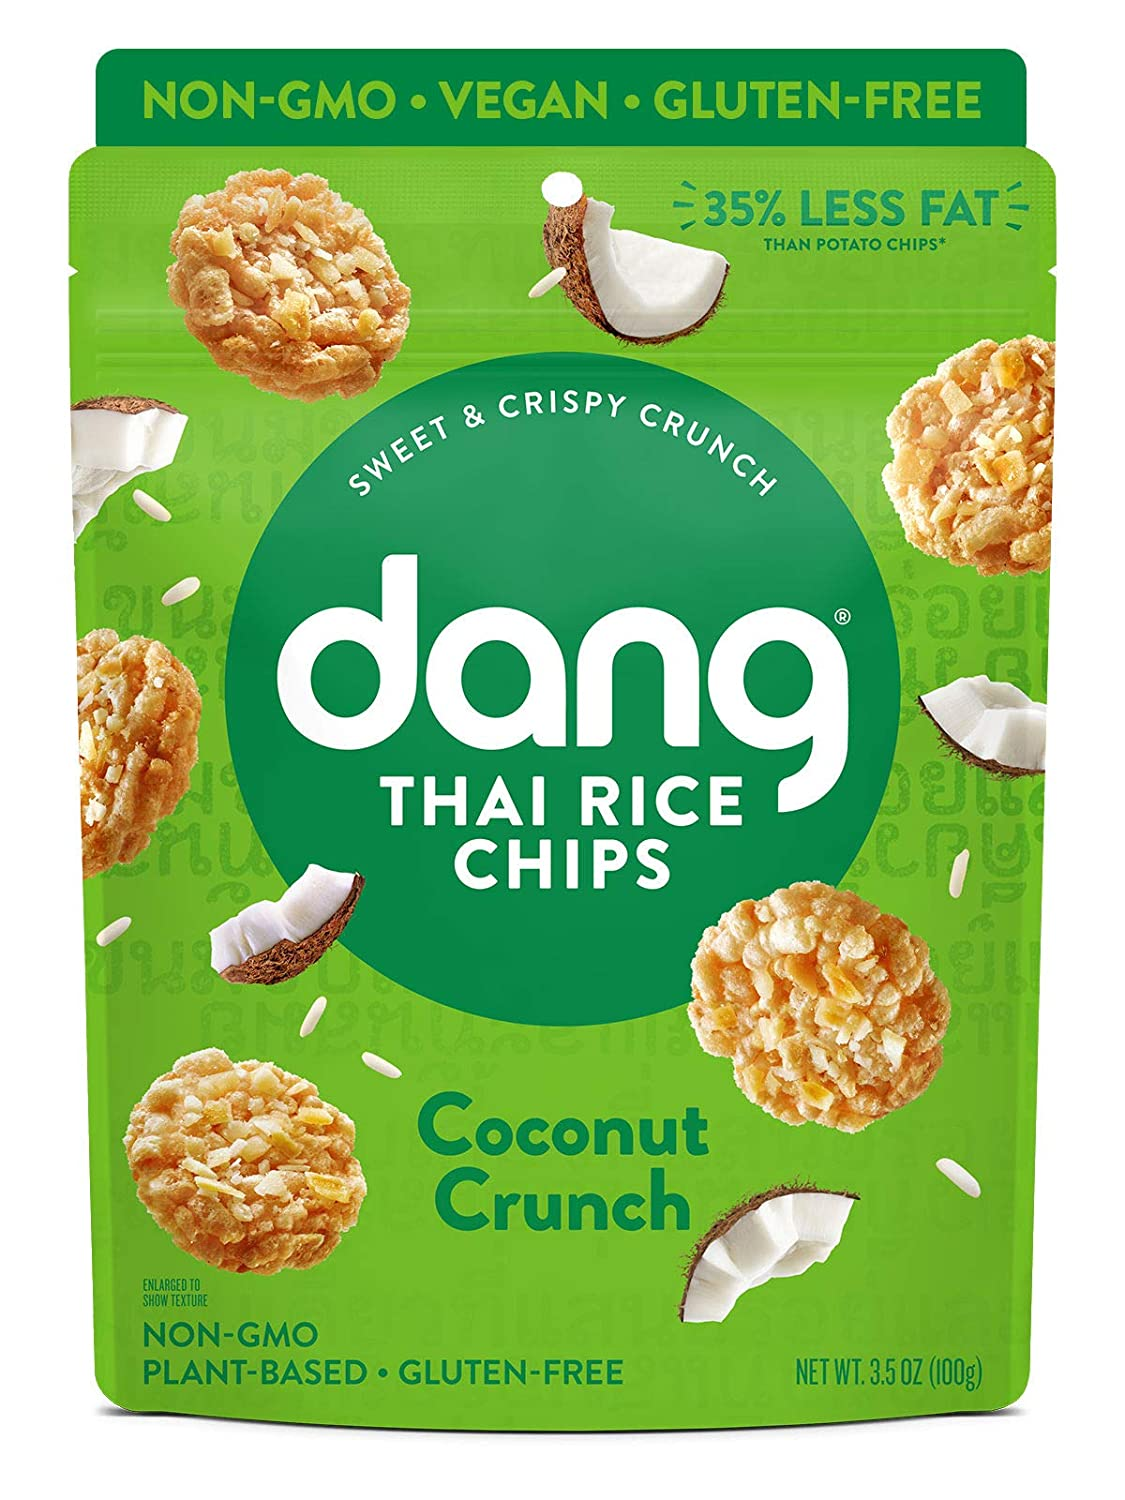 DANG Sticky Rice Chips   Coconut Crunch   4 Pack   Vegan, Gluten Free, Non Gmo Rice Crisps, Healthy Snacks Made With Whole Foods   3.5 Oz Bags